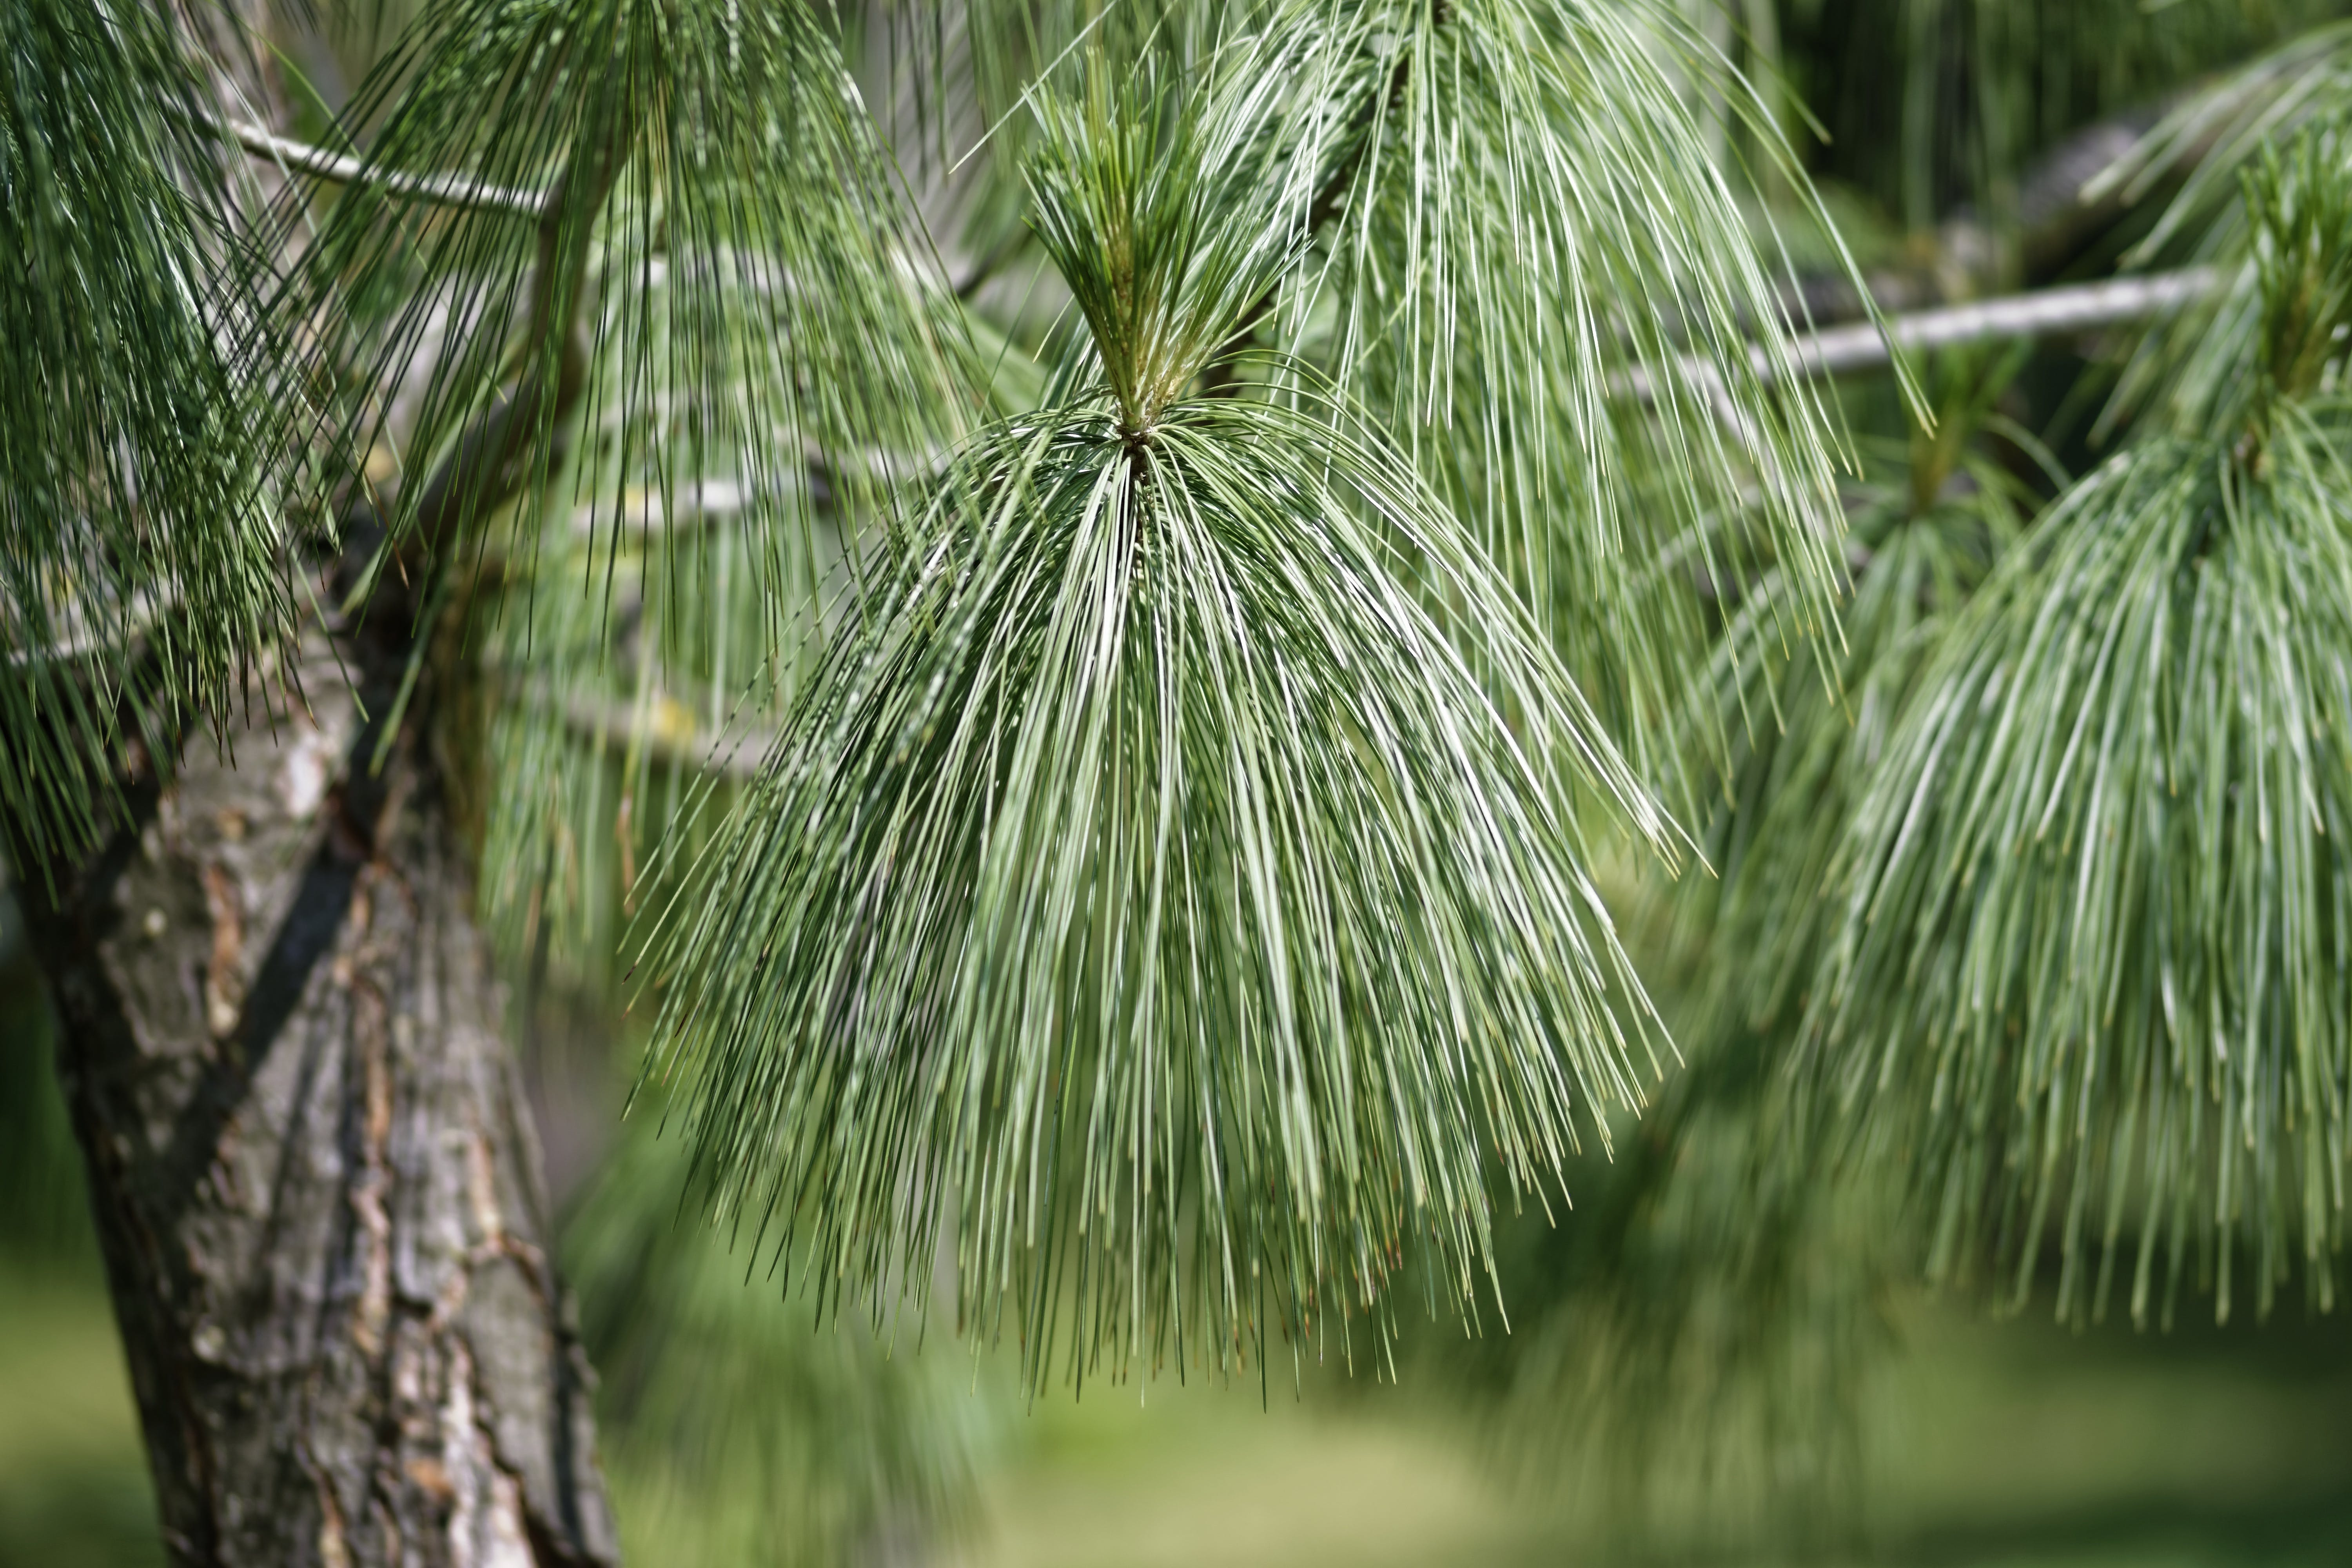 Selective Focus Photo of Pine Tree